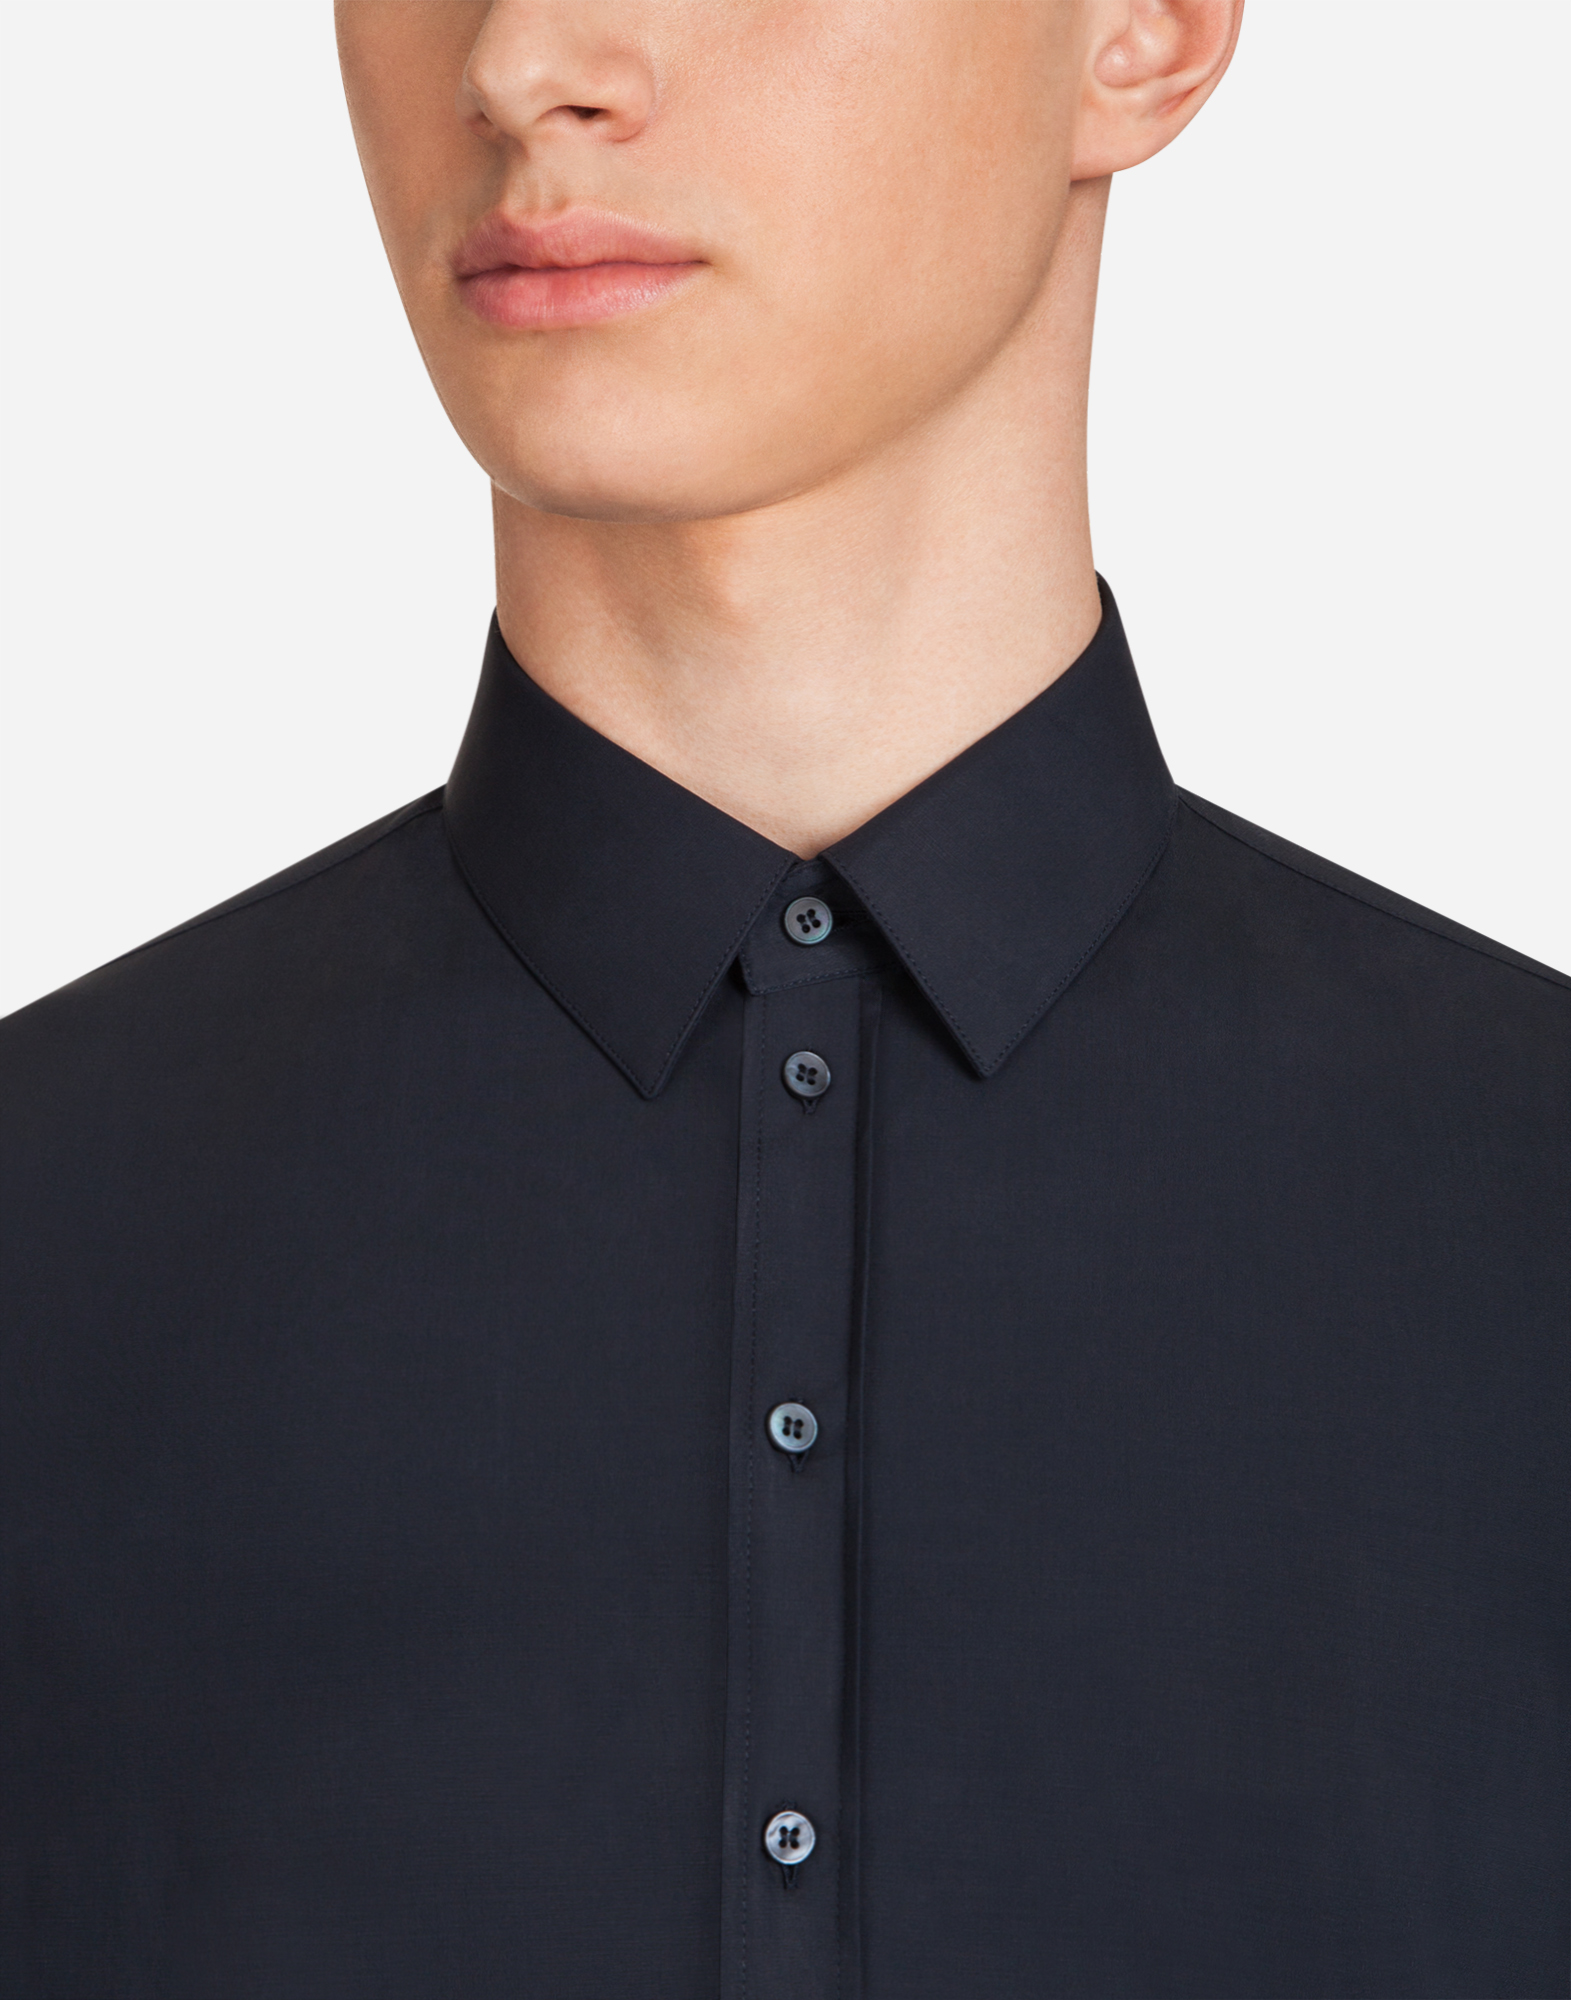 Dolce & Gabbana SICILIA-FIT SHIRT IN STRETCH POPLIN